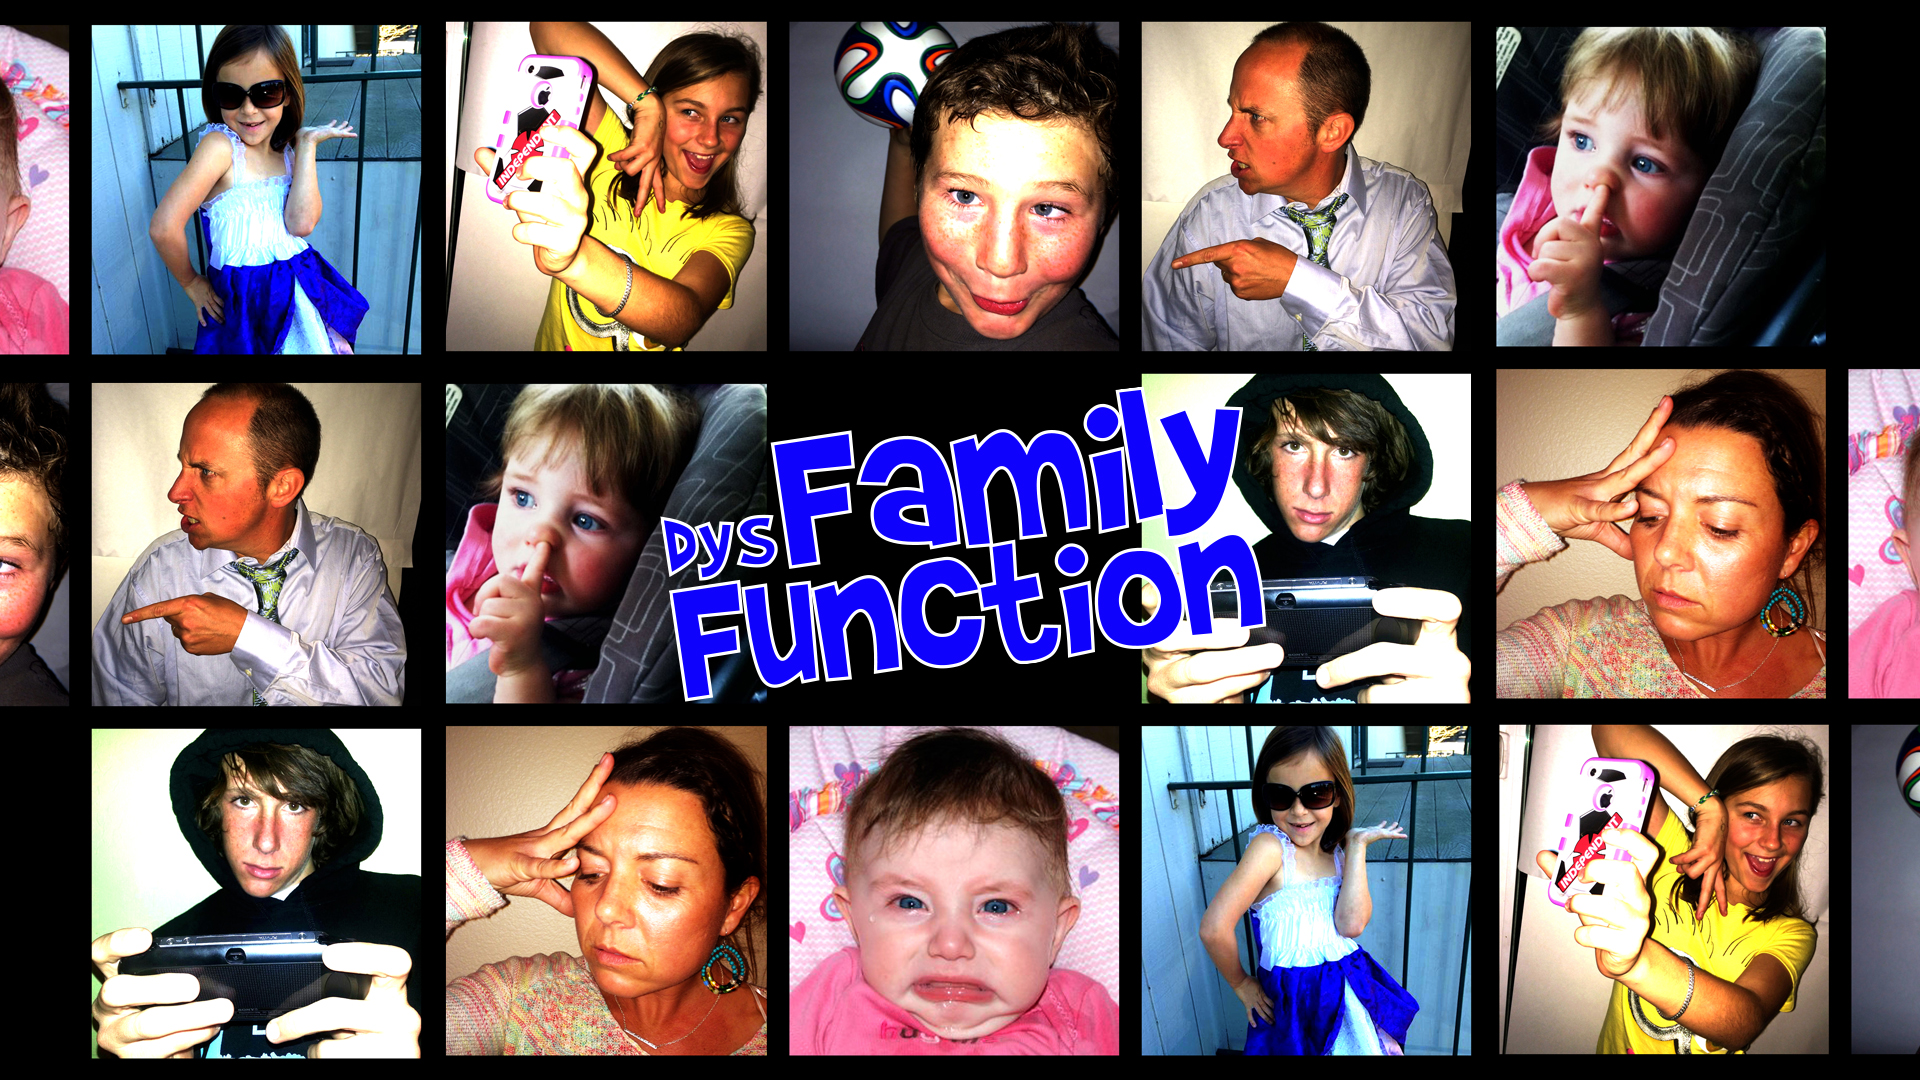 Family dysFunction FULL artwork.jpg